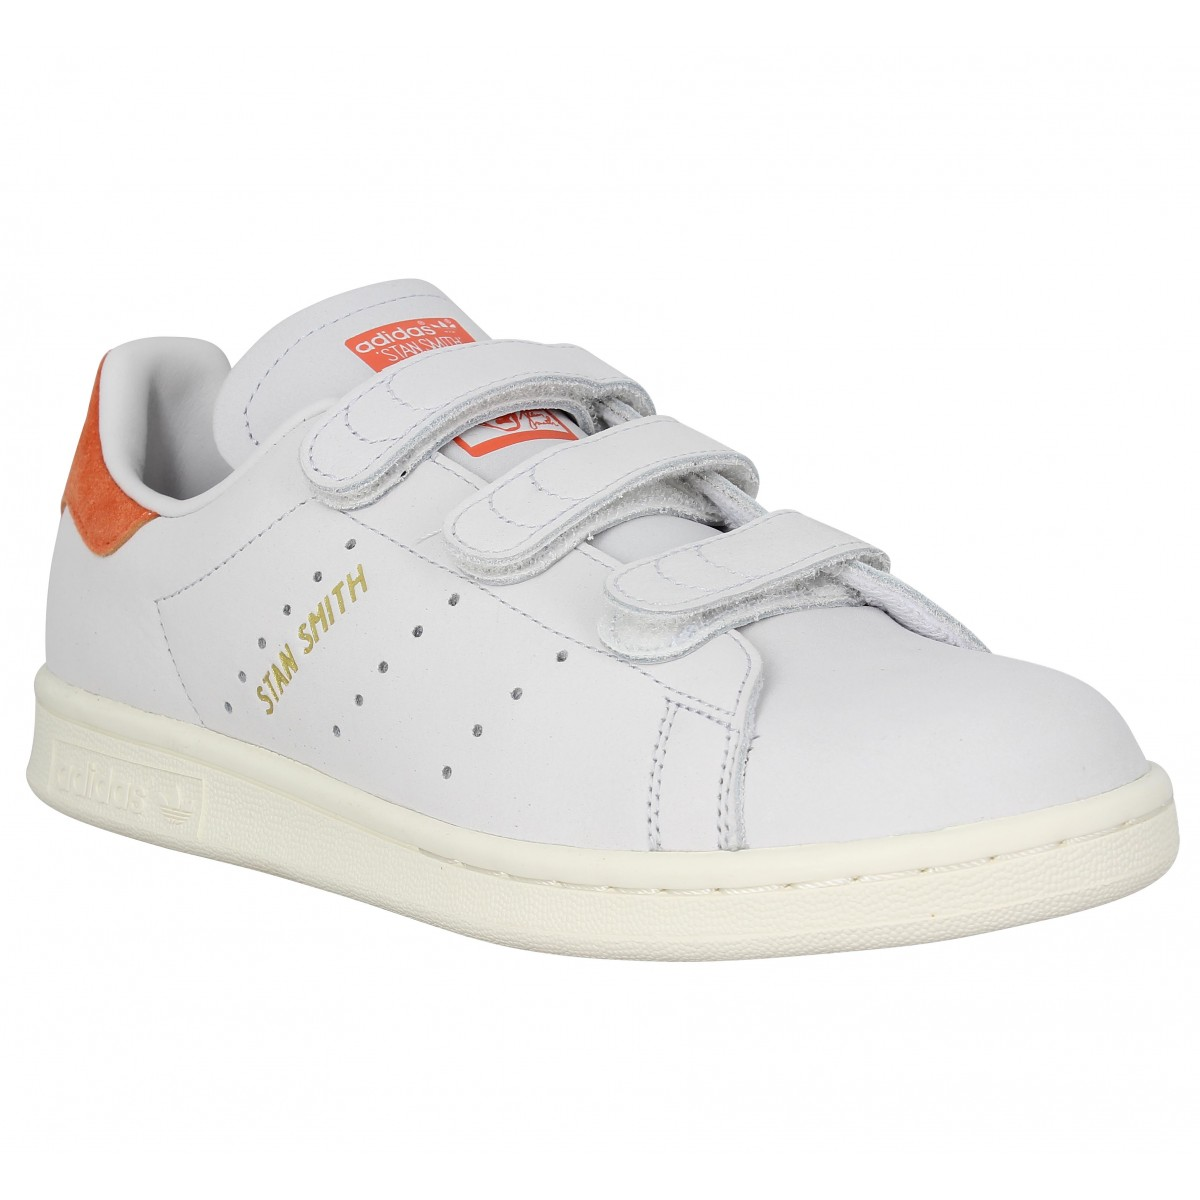 Baskets ADIDAS Stan Smith velcro nubuck Femme Blanc